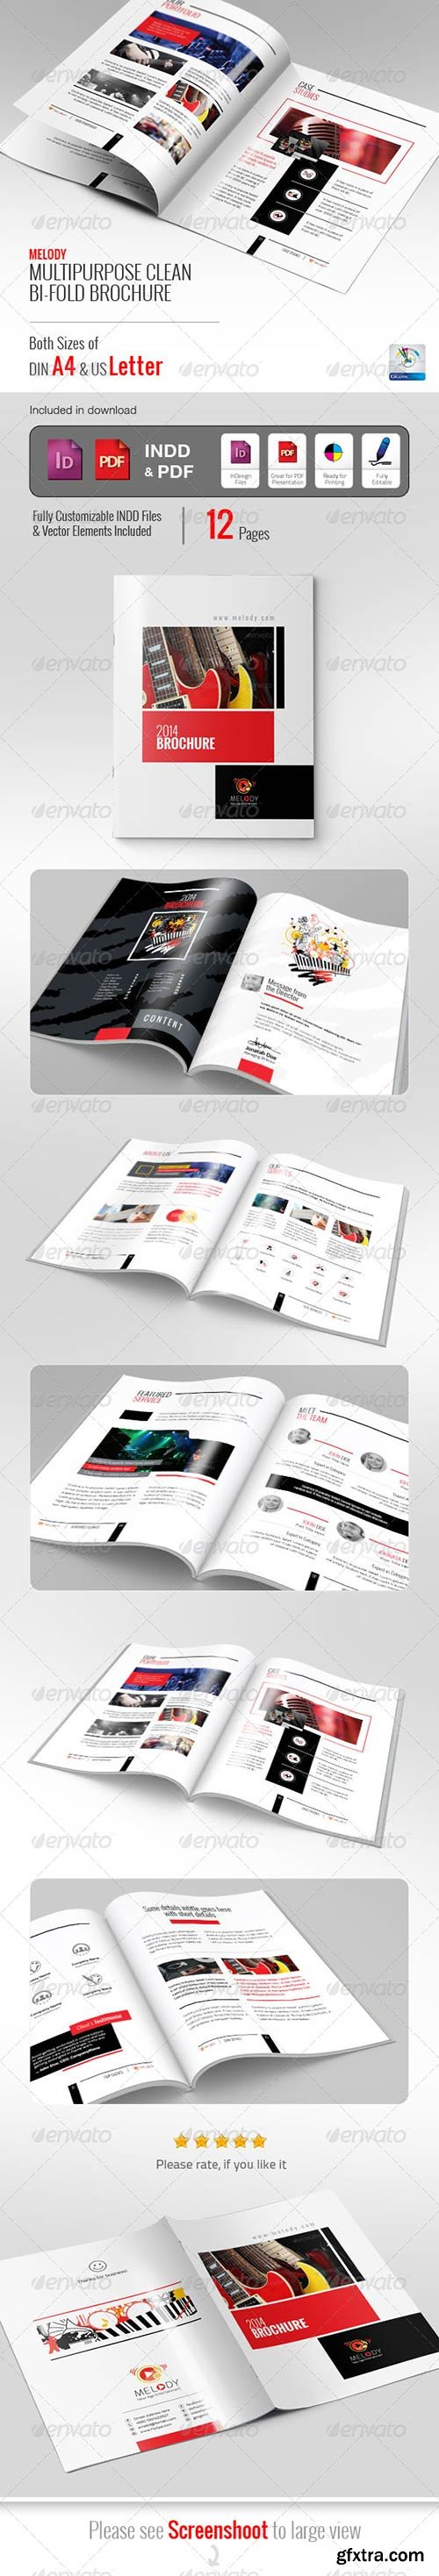 Graphicriver - Melody Clean Bifold Brochure 5816693